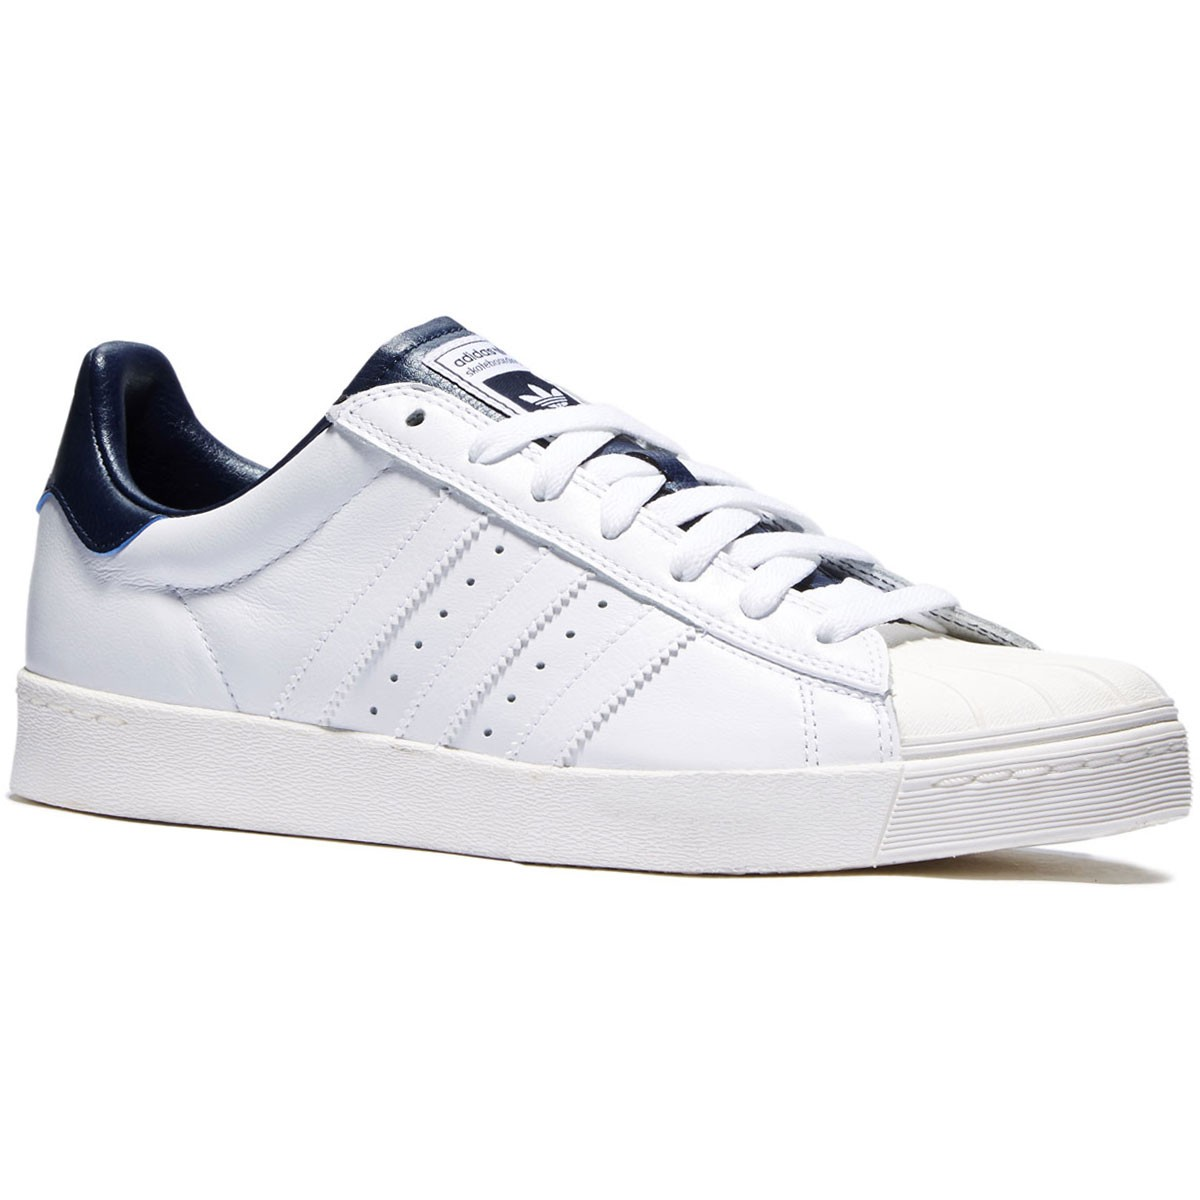 Adidas Superstar Vulc ADV White Black White Empire Skate